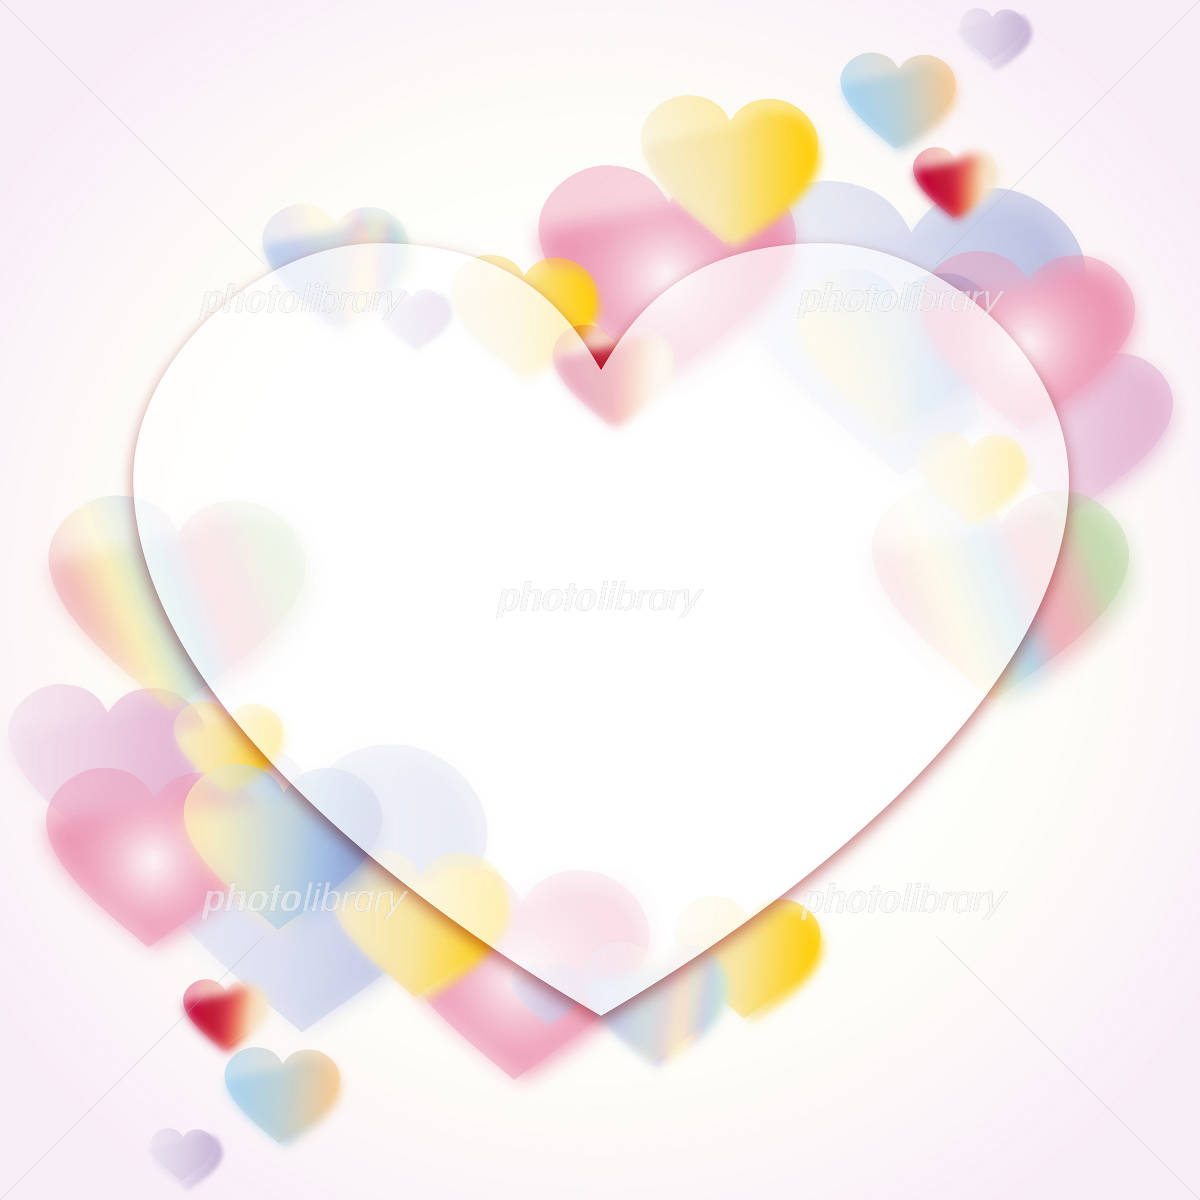 StValentine Valentine's Day Colorful Heart イラスト素材